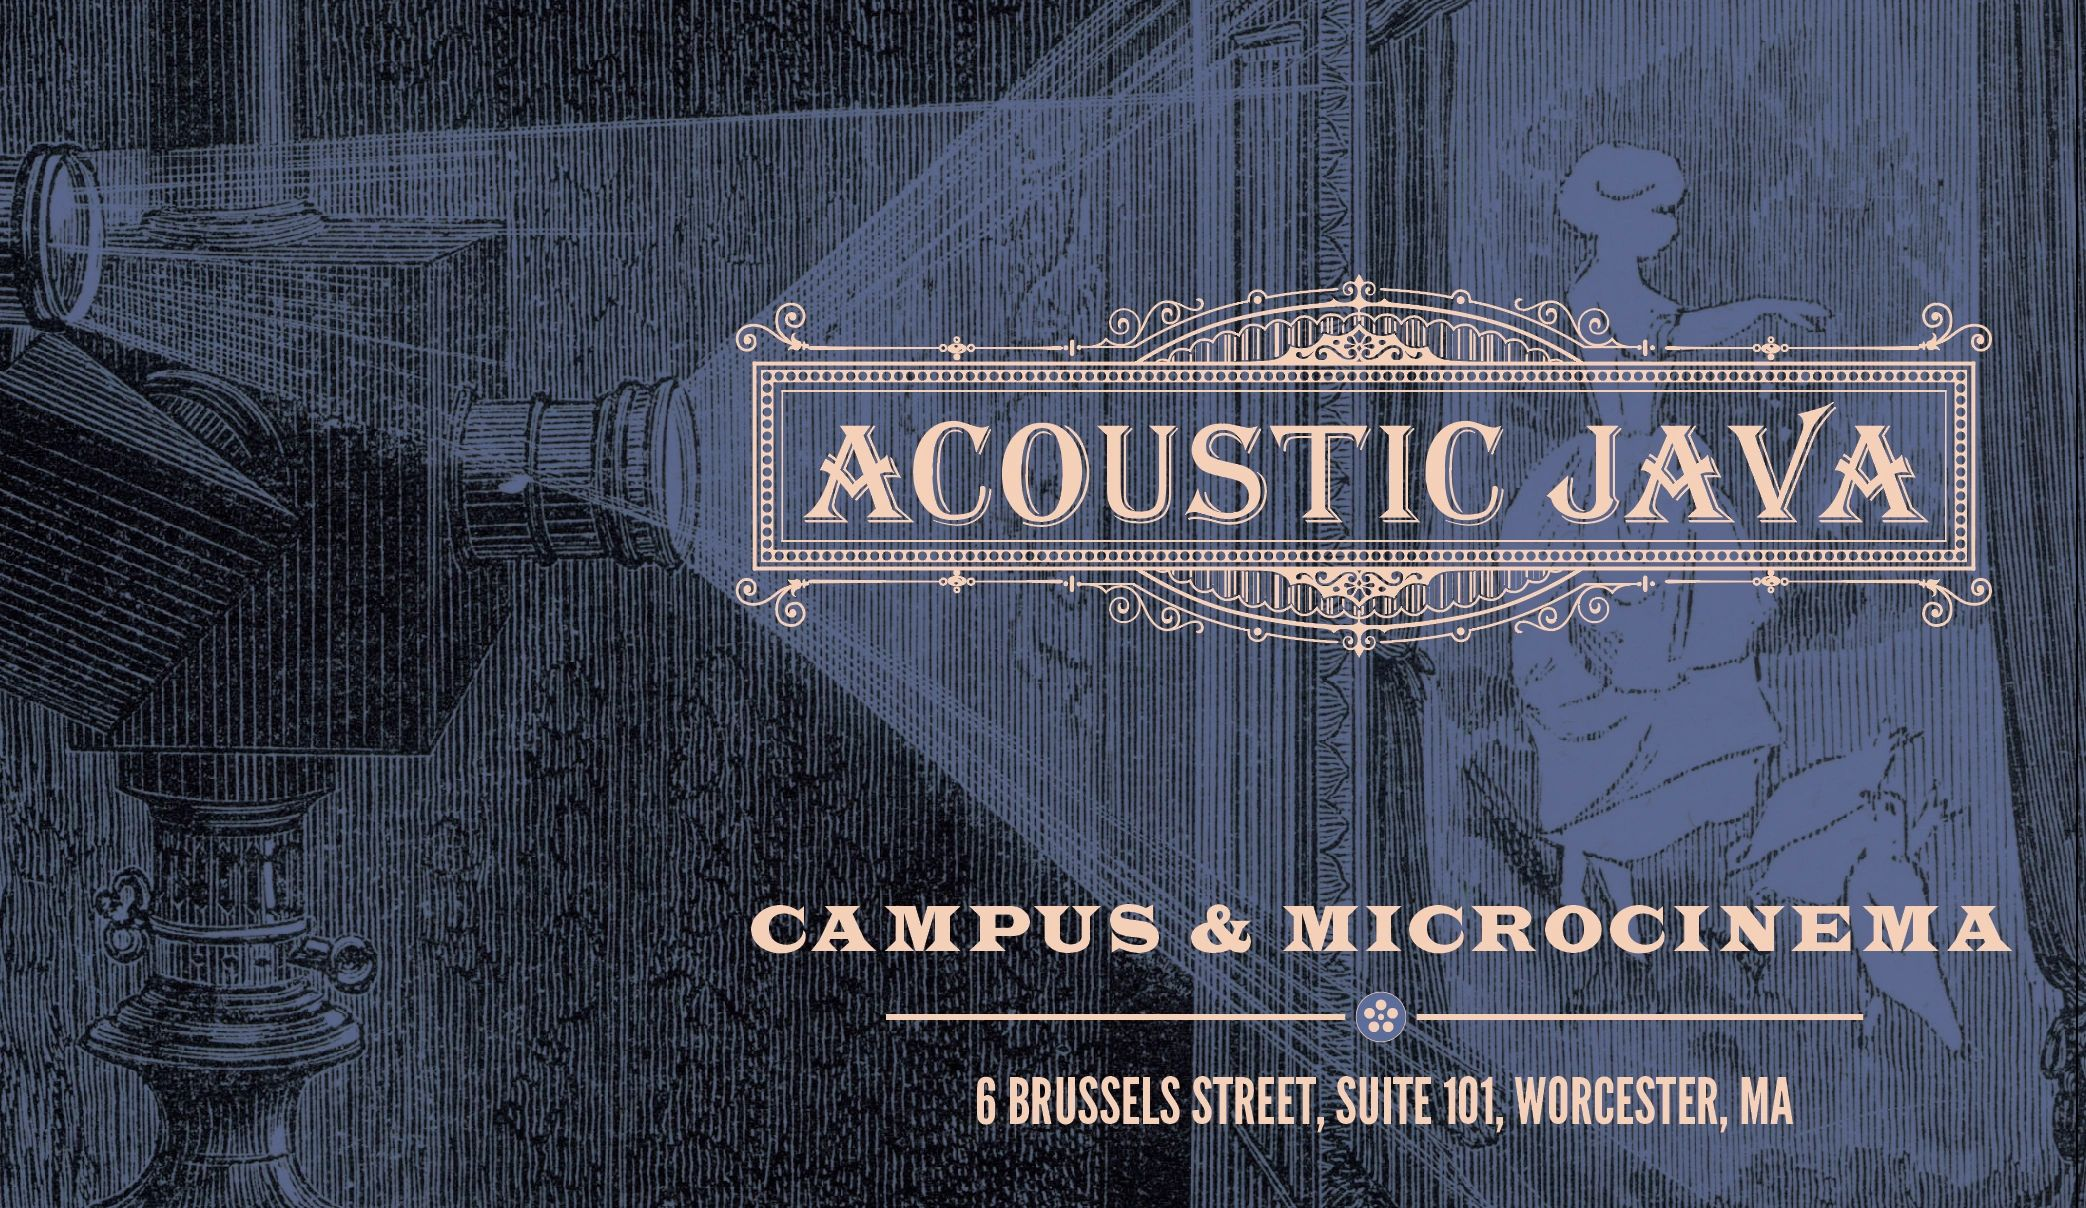 Acoustic java campus and microcinema image of a lady feeding birds cast on a screen by an early movi